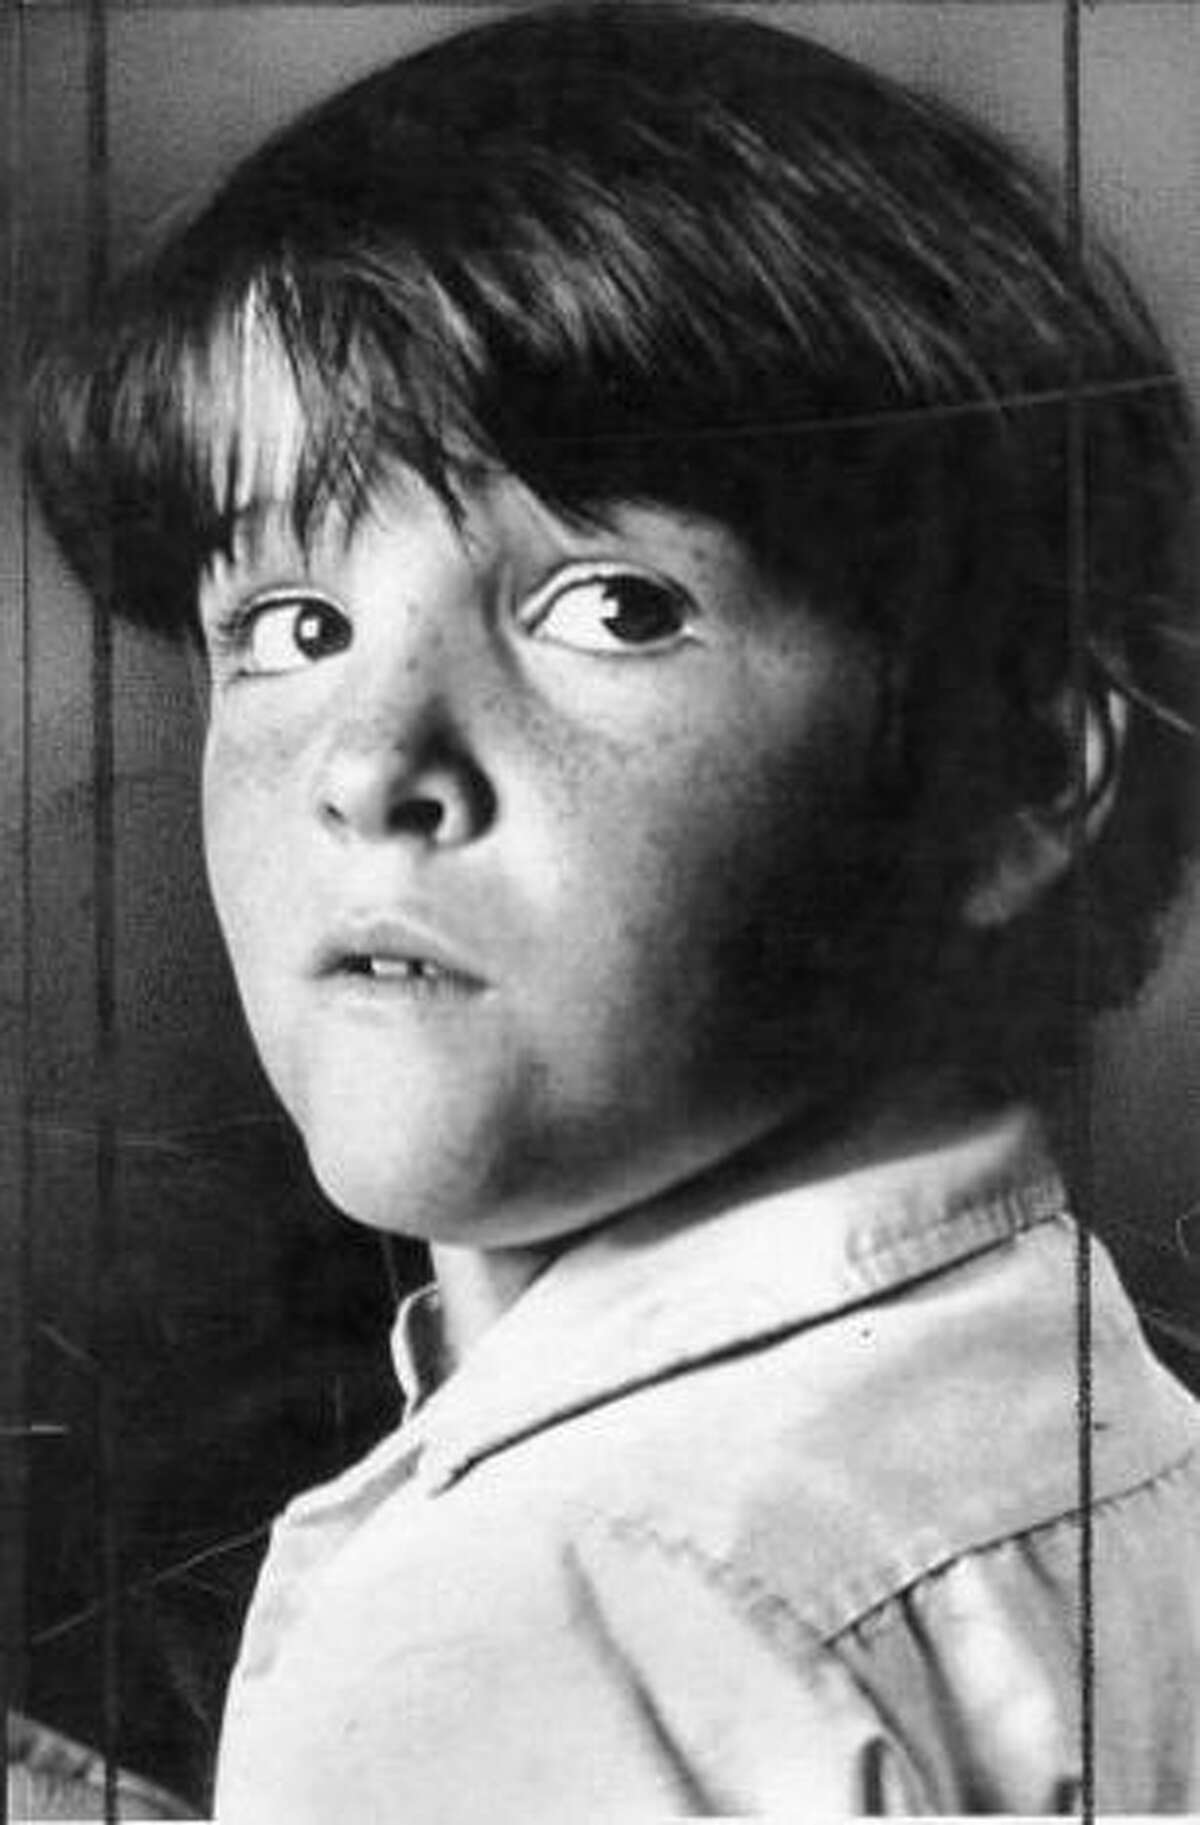 Kevin was 10 when he disappeared off the streets of San Francisco in February 1984. His disappearance represented a turning point in abduction awareness. Before he vanished, missing children were often classified as